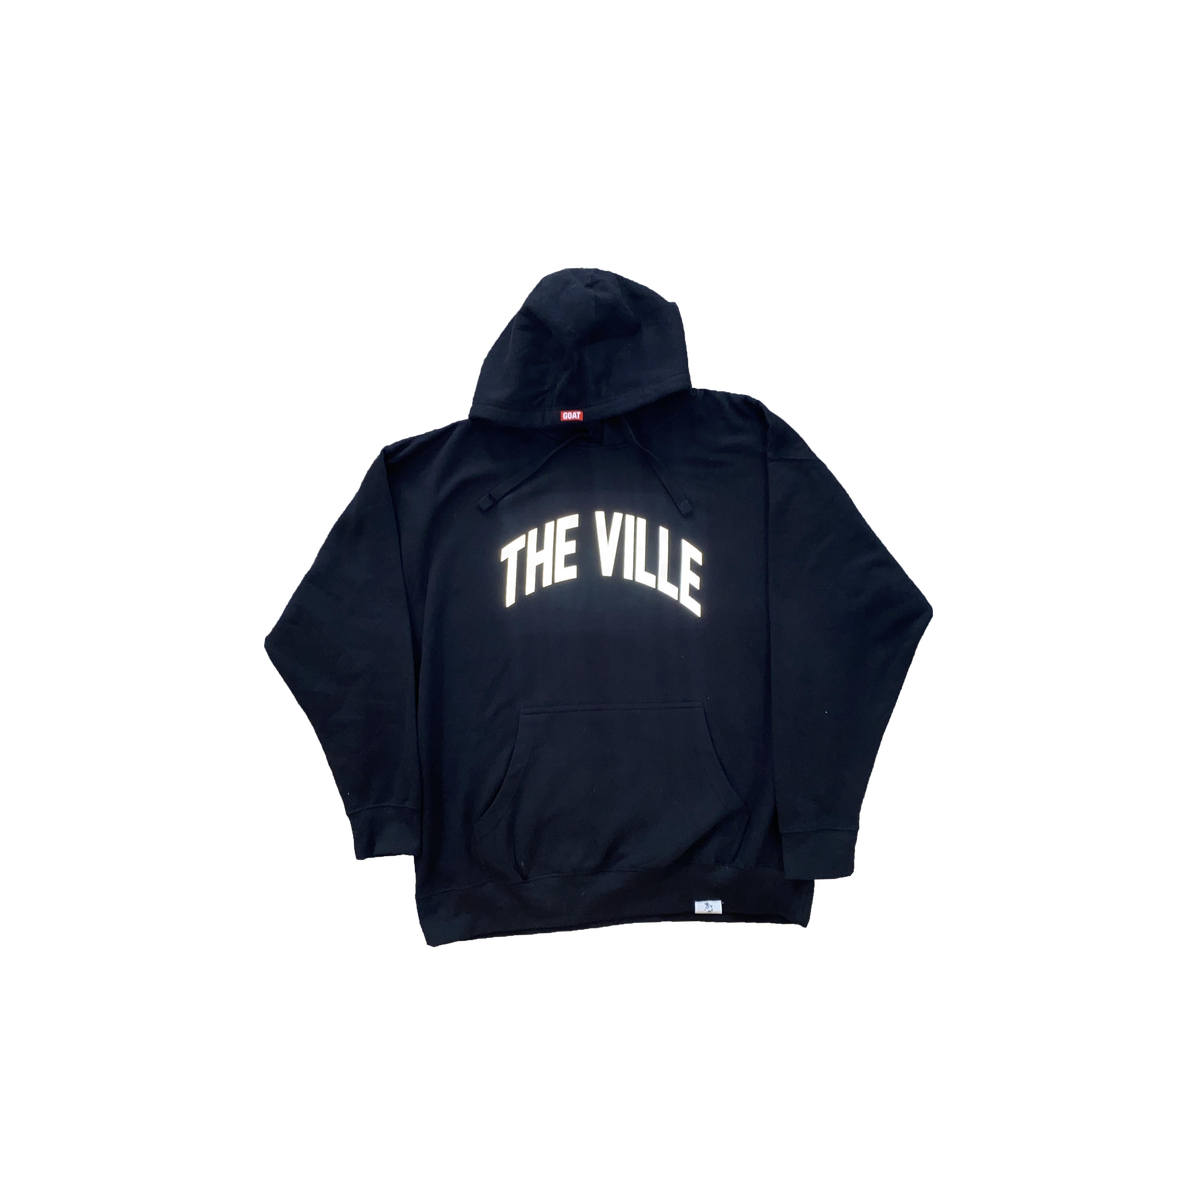 """The Ville"" Louisville hoodie reflective logo"